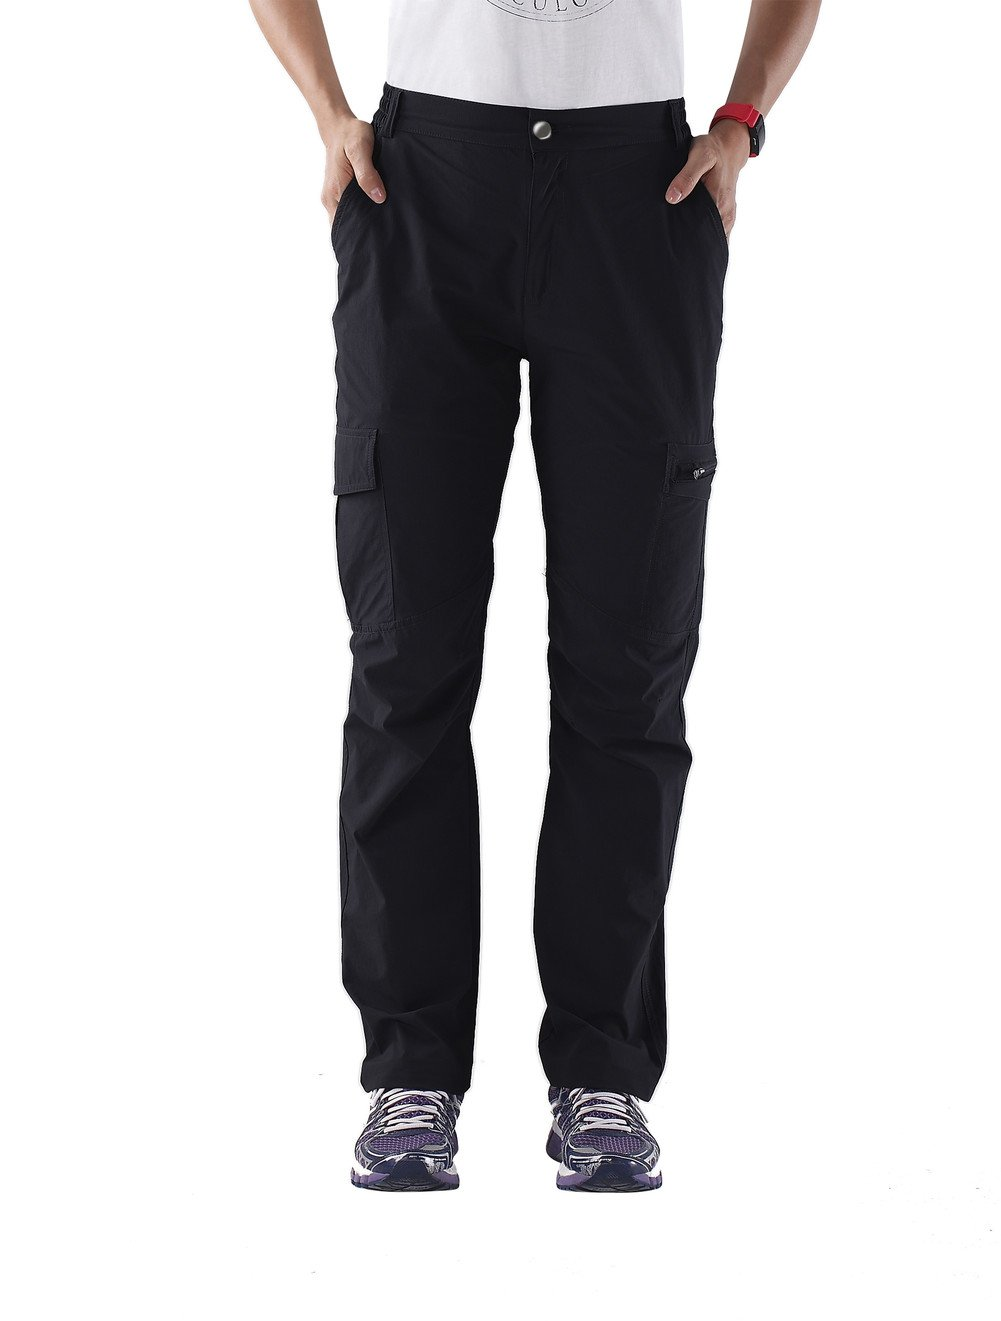 Nonwe Women's Outdoor Hiking Cargo Pant Black M/29 Inseam